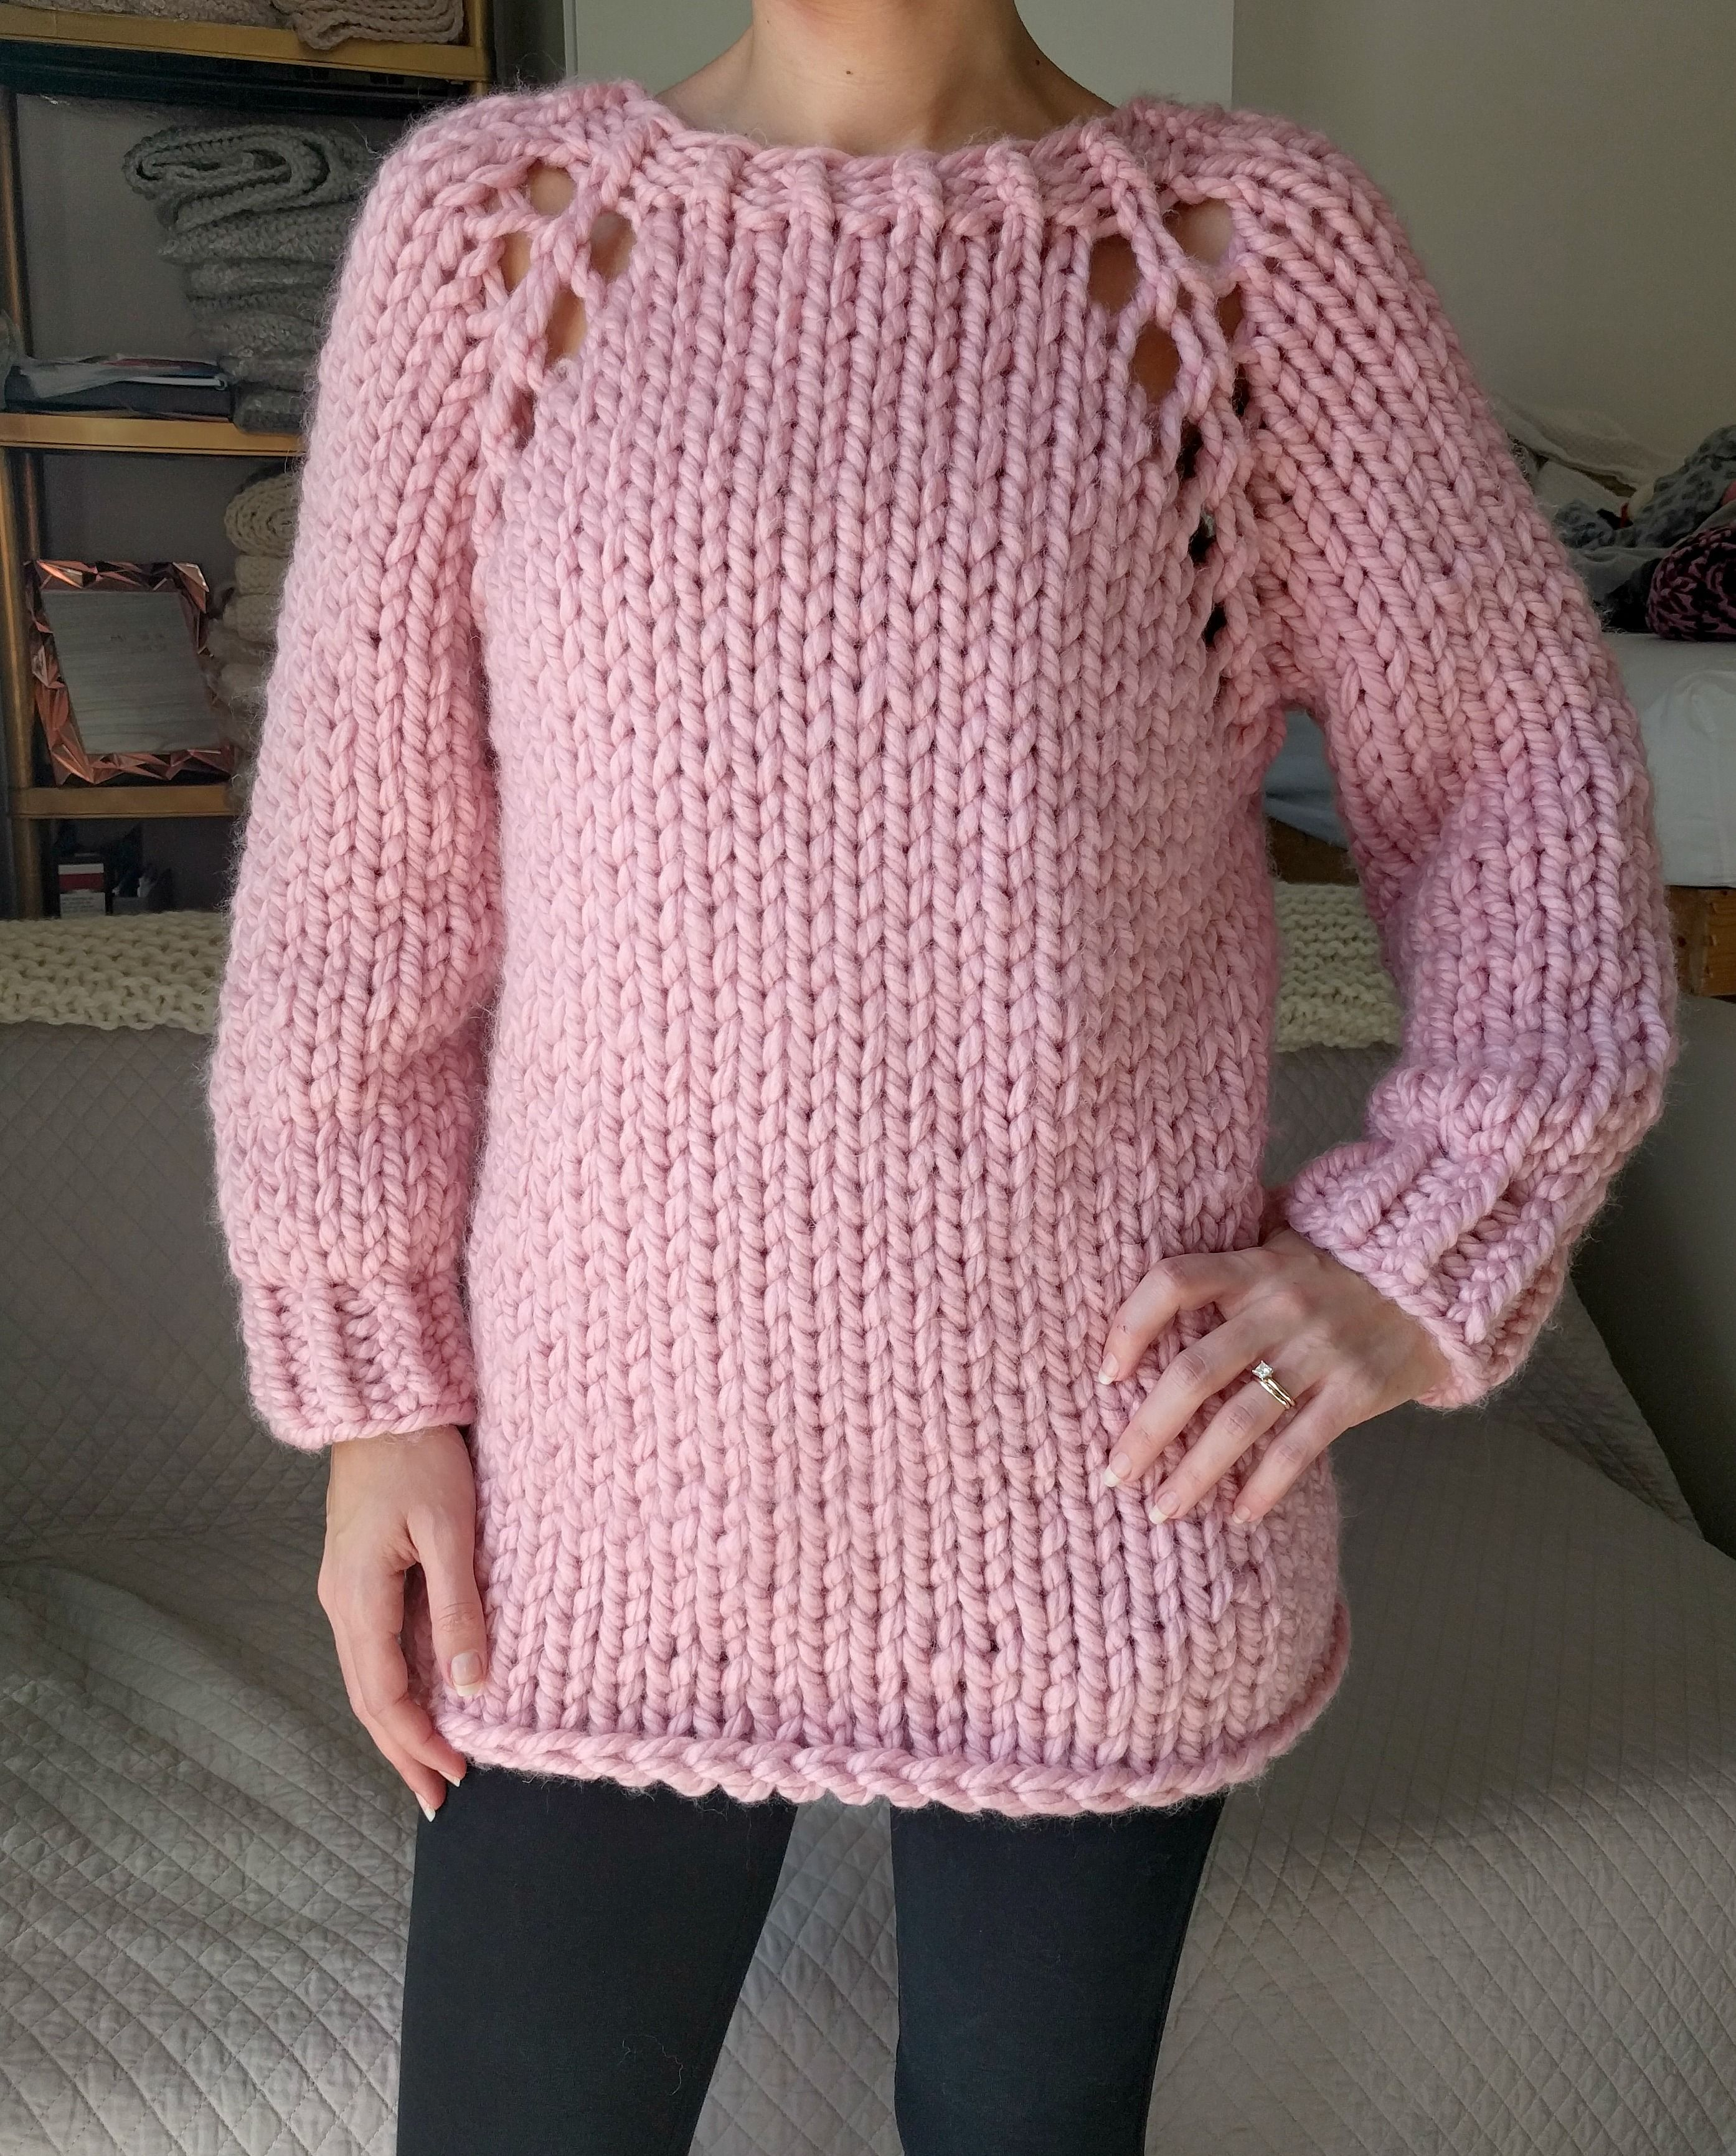 3ef01ab2b5a4f Chunky Knit Sweater Pattern from My GG.